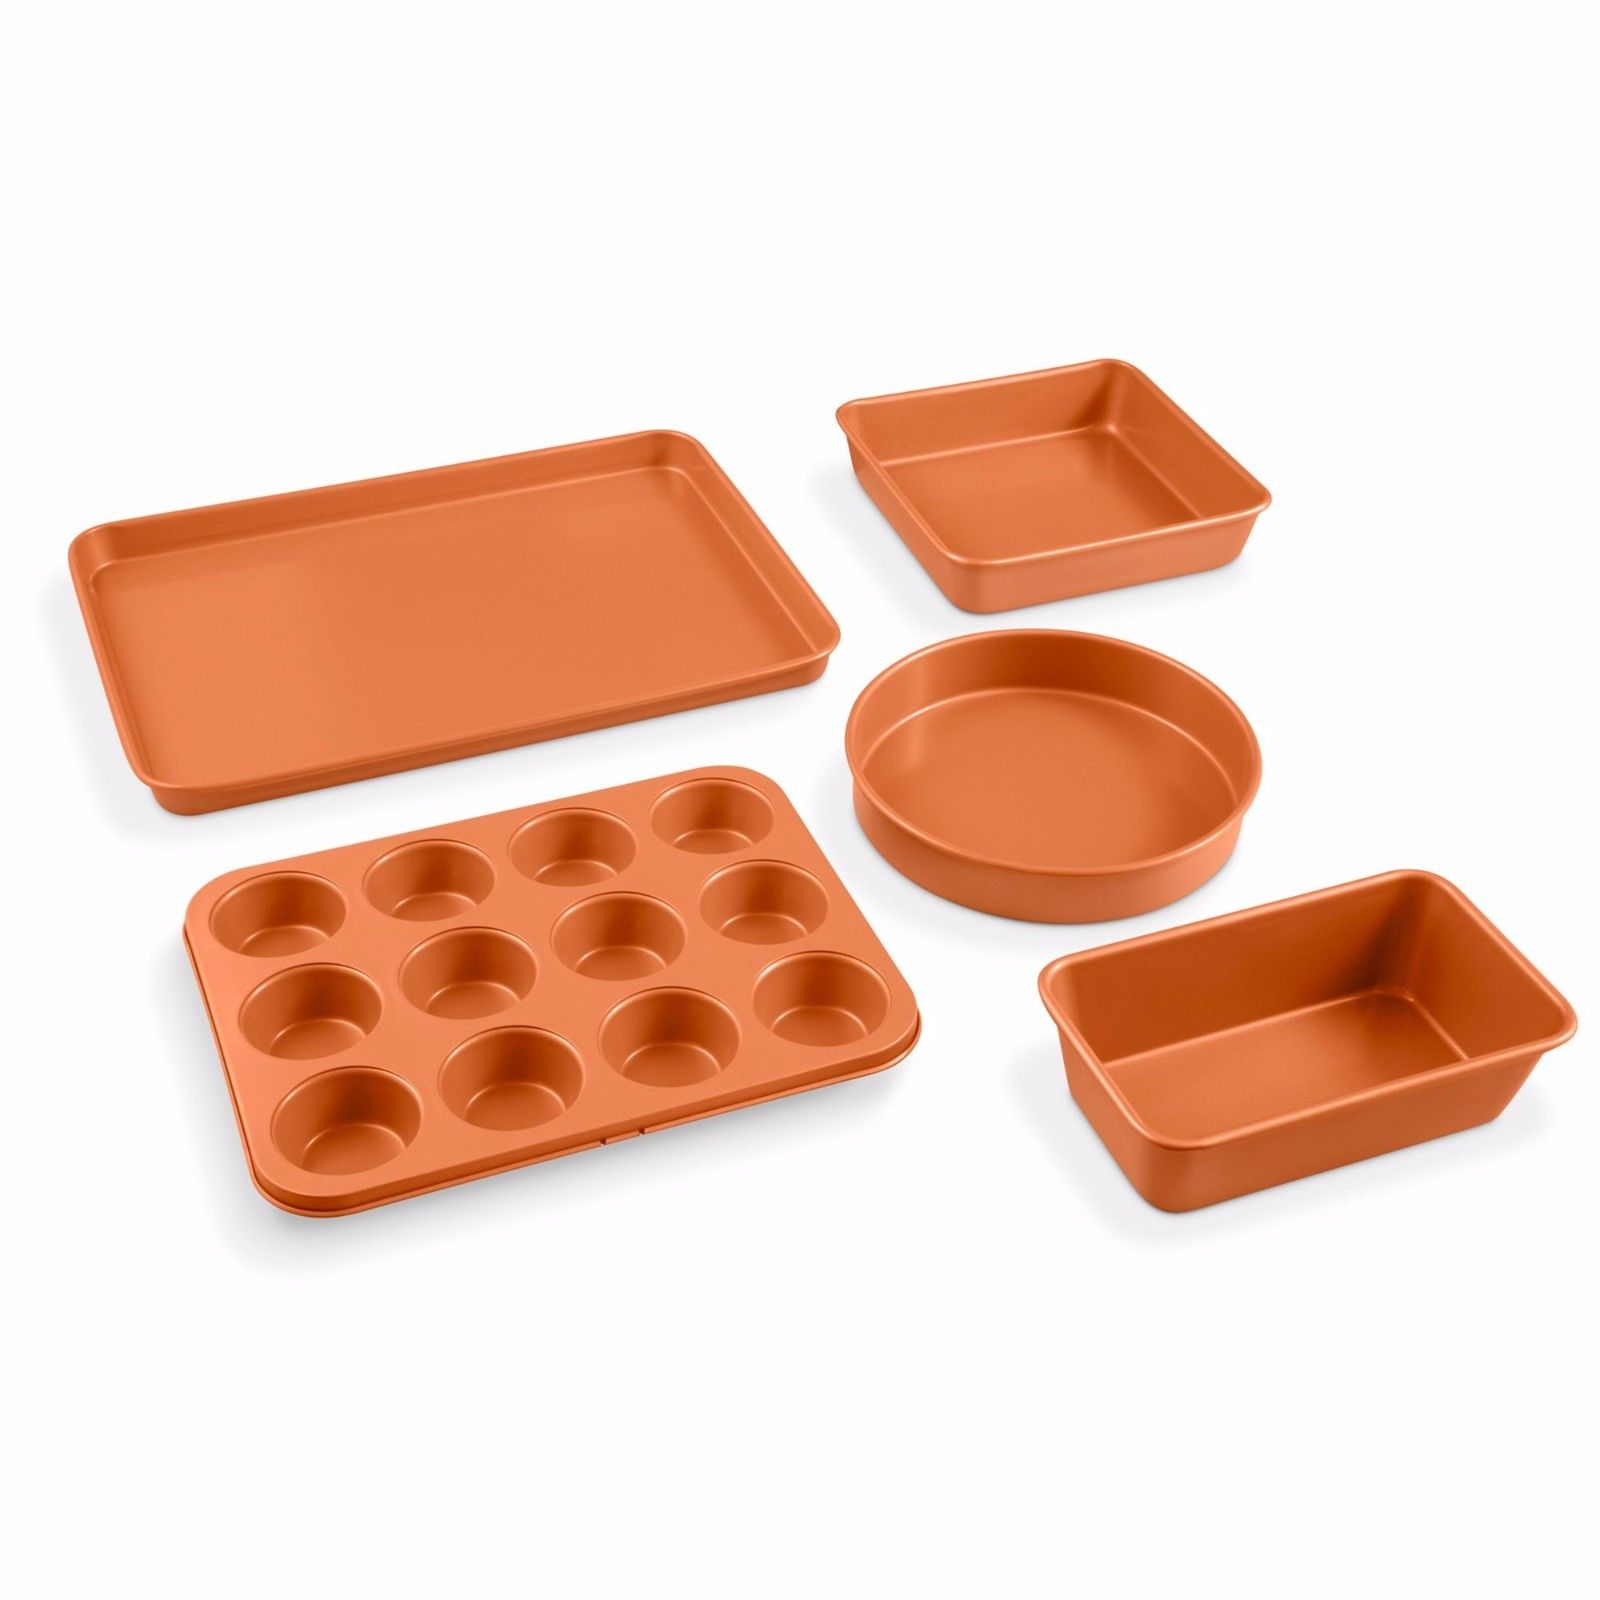 Gotham Steel 5 Piece Copper Bakeware Set with Nonstick Ti-Cerama Coating, As Seen on TV